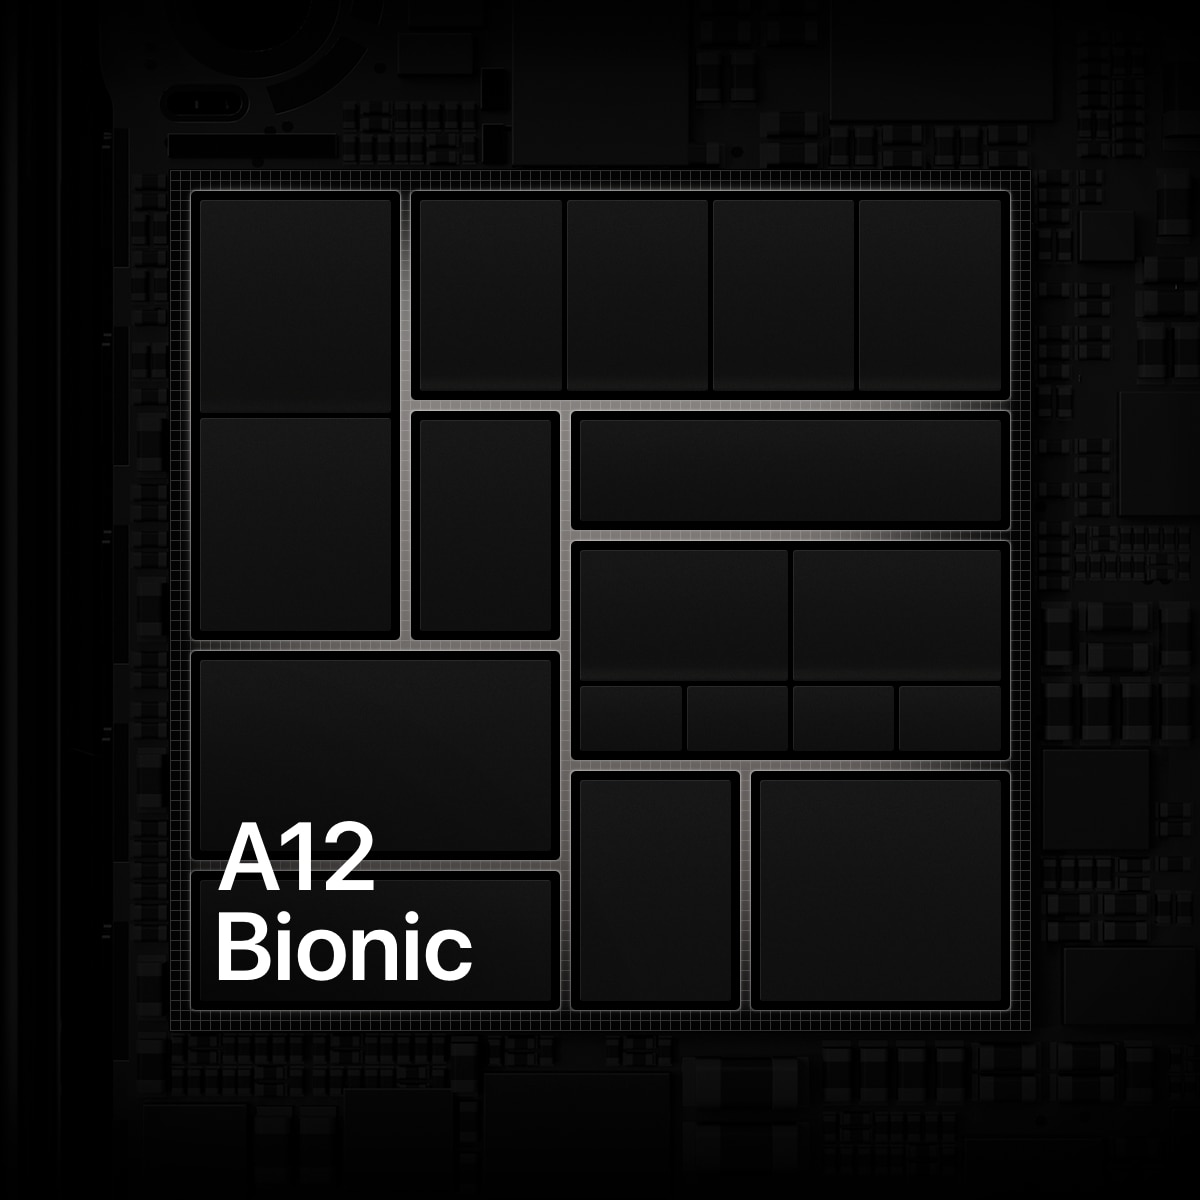 The iPhone XS and XS Max come with the A12 Bionic chip.